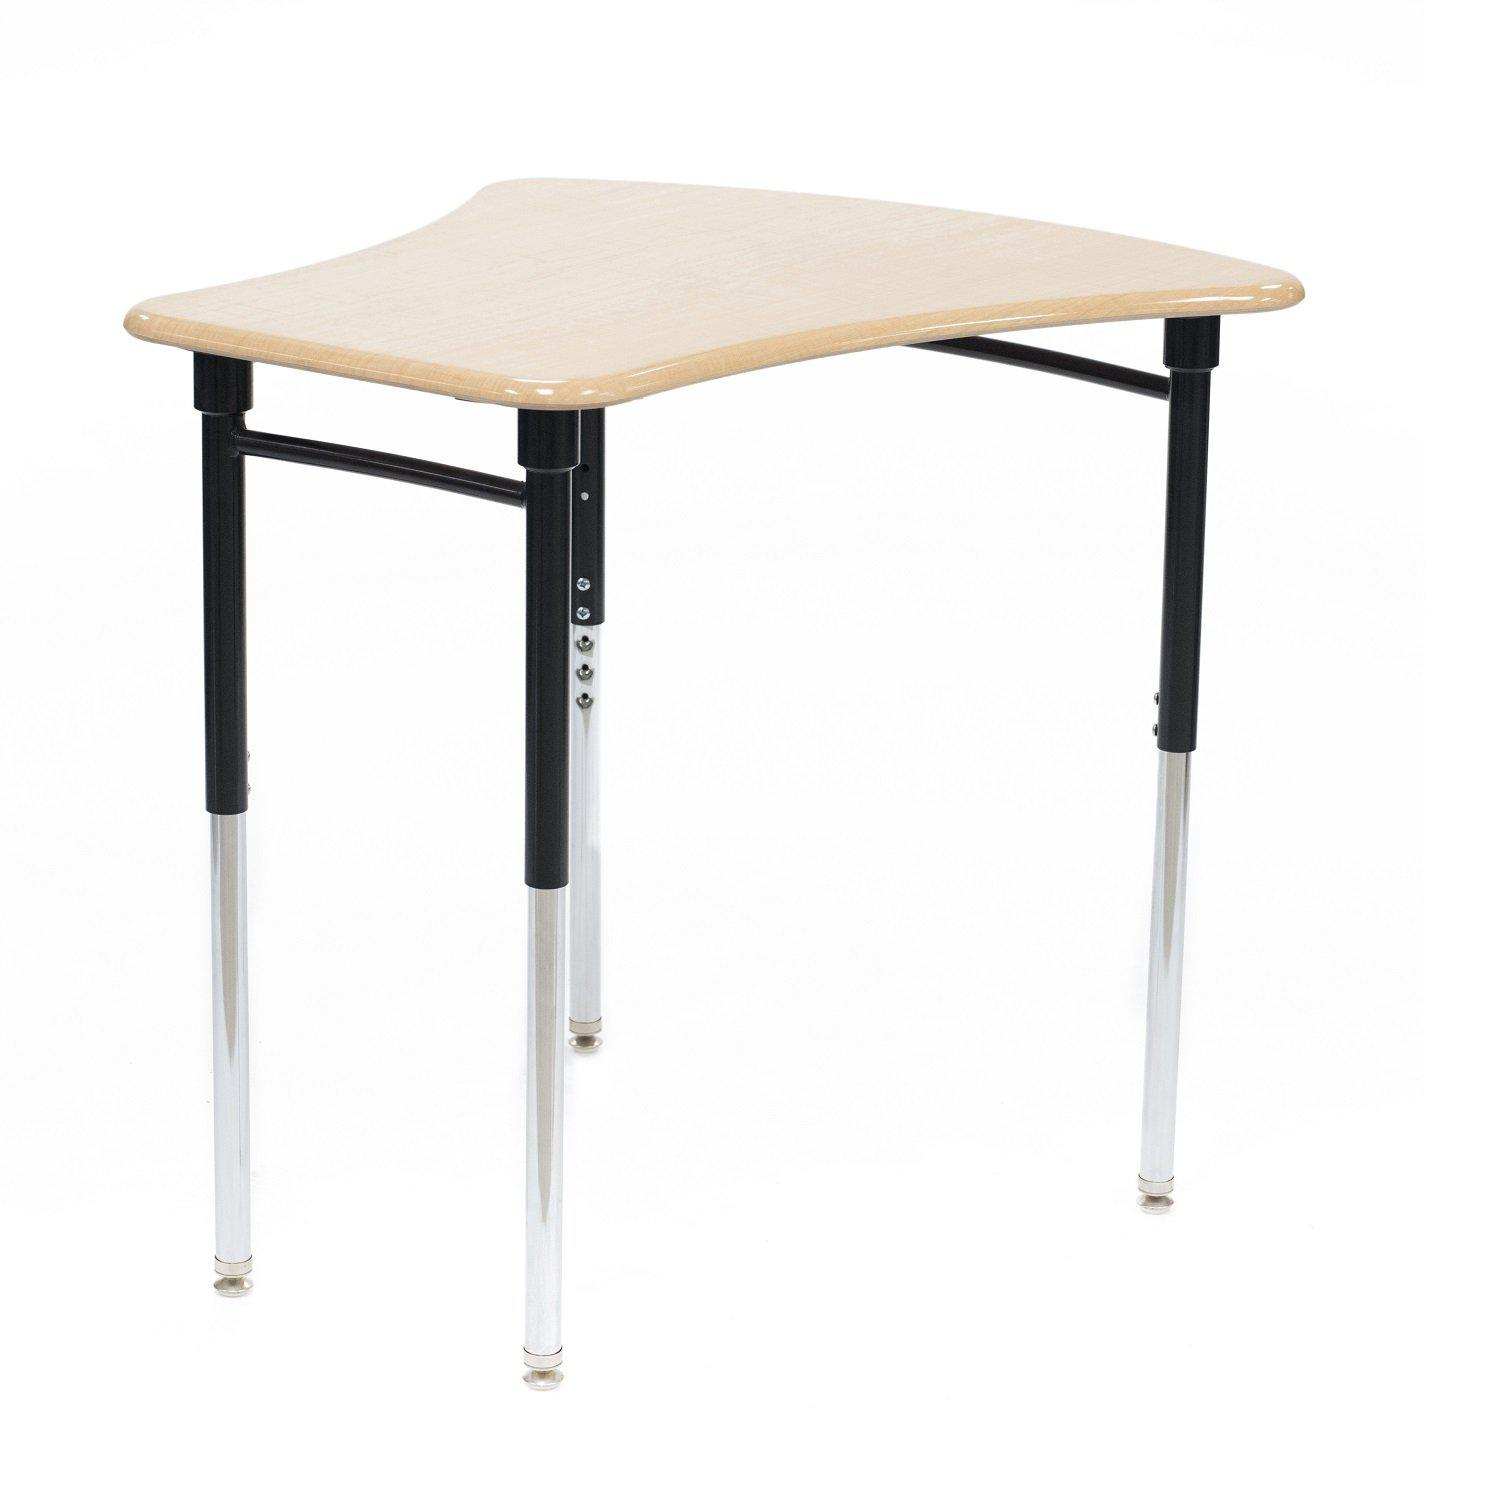 Kaleidoscope Collaborative Learning Adjustable Height Vertebrae Desk with Solid Plastic Top